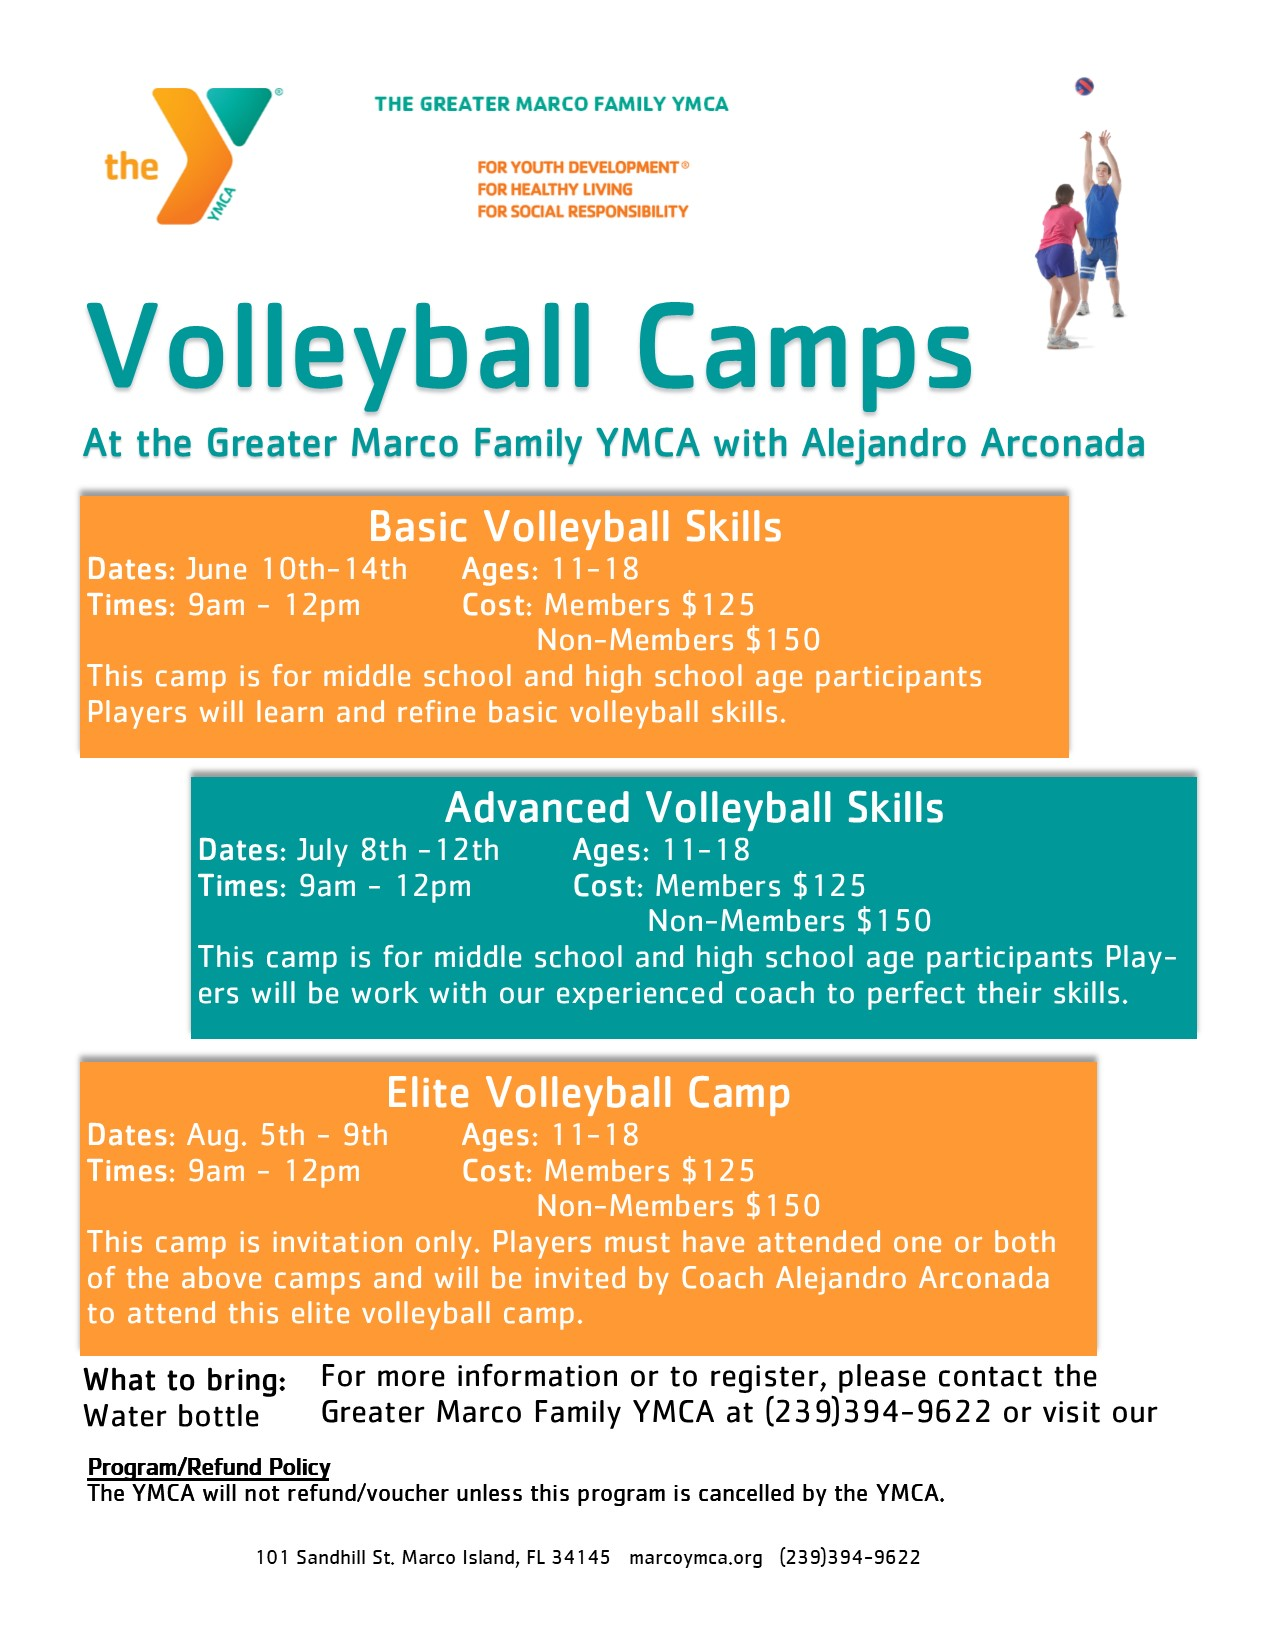 YMCA Volleyball Camp